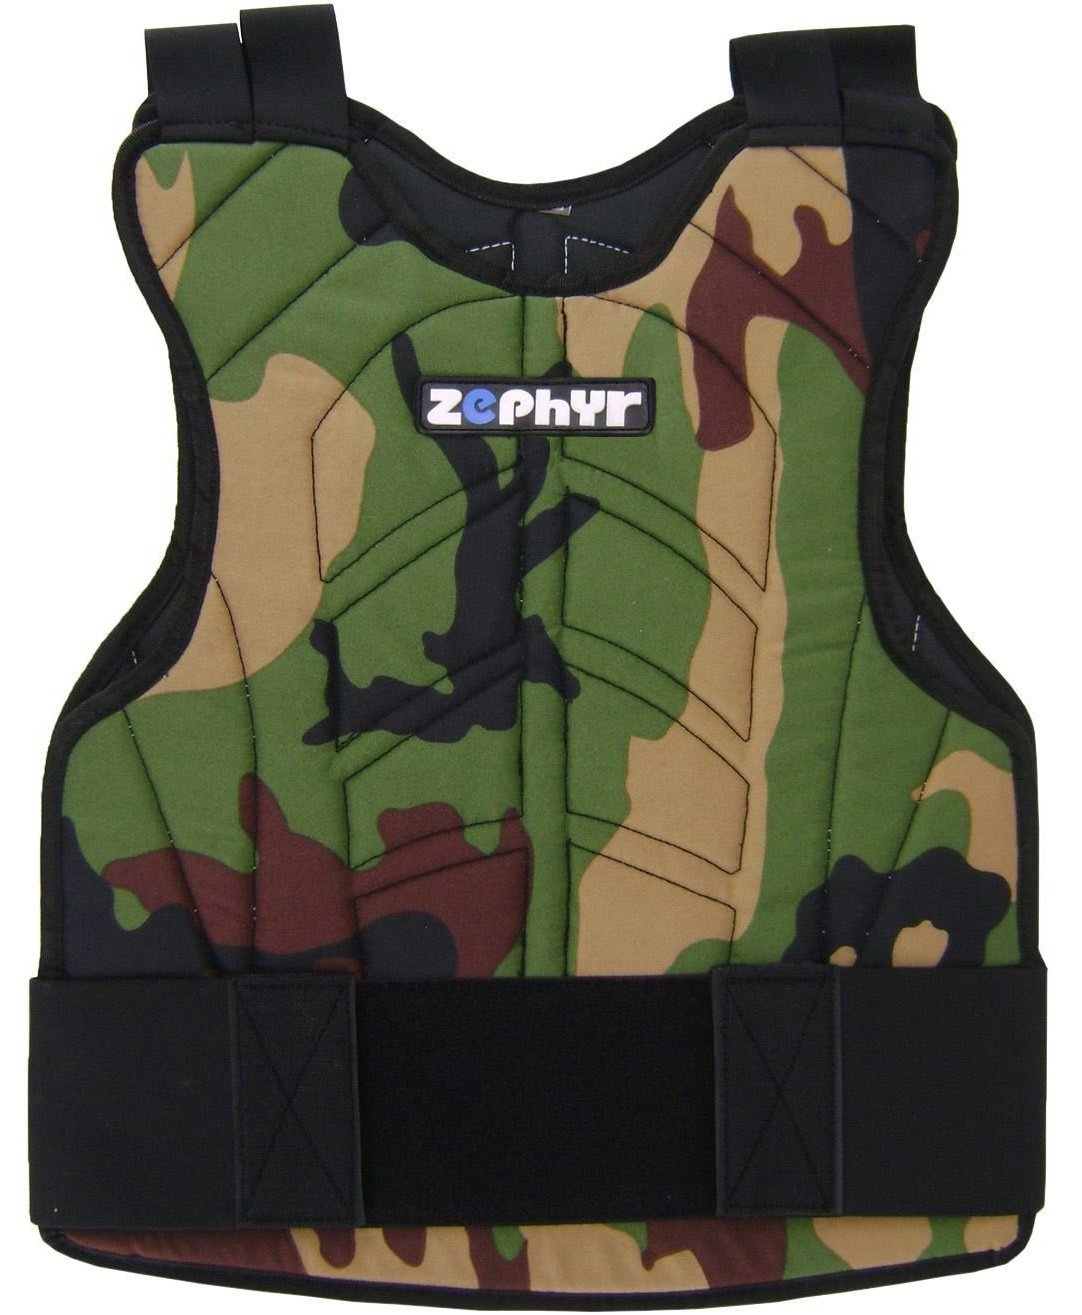 Zephyr Sports Padded Chest Protector - Reversible Woodland Camo by Zephyr Tactical